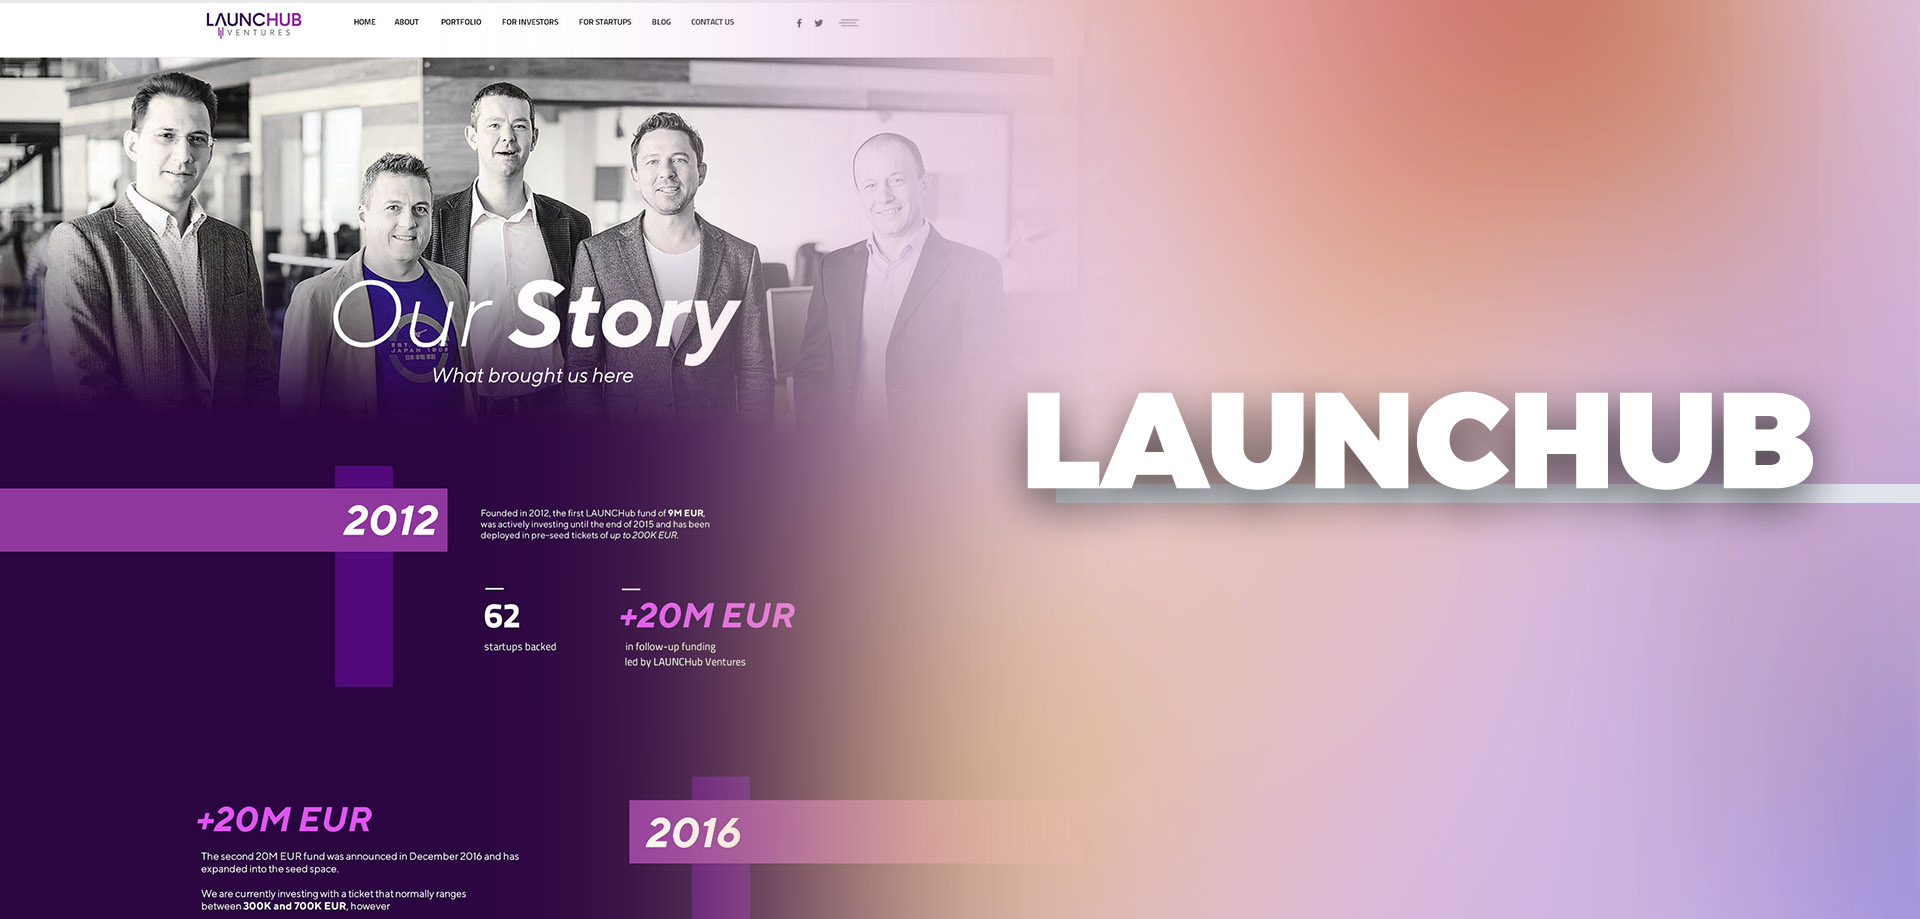 afterteam projects wordpress 09 launchub 2018 banner01